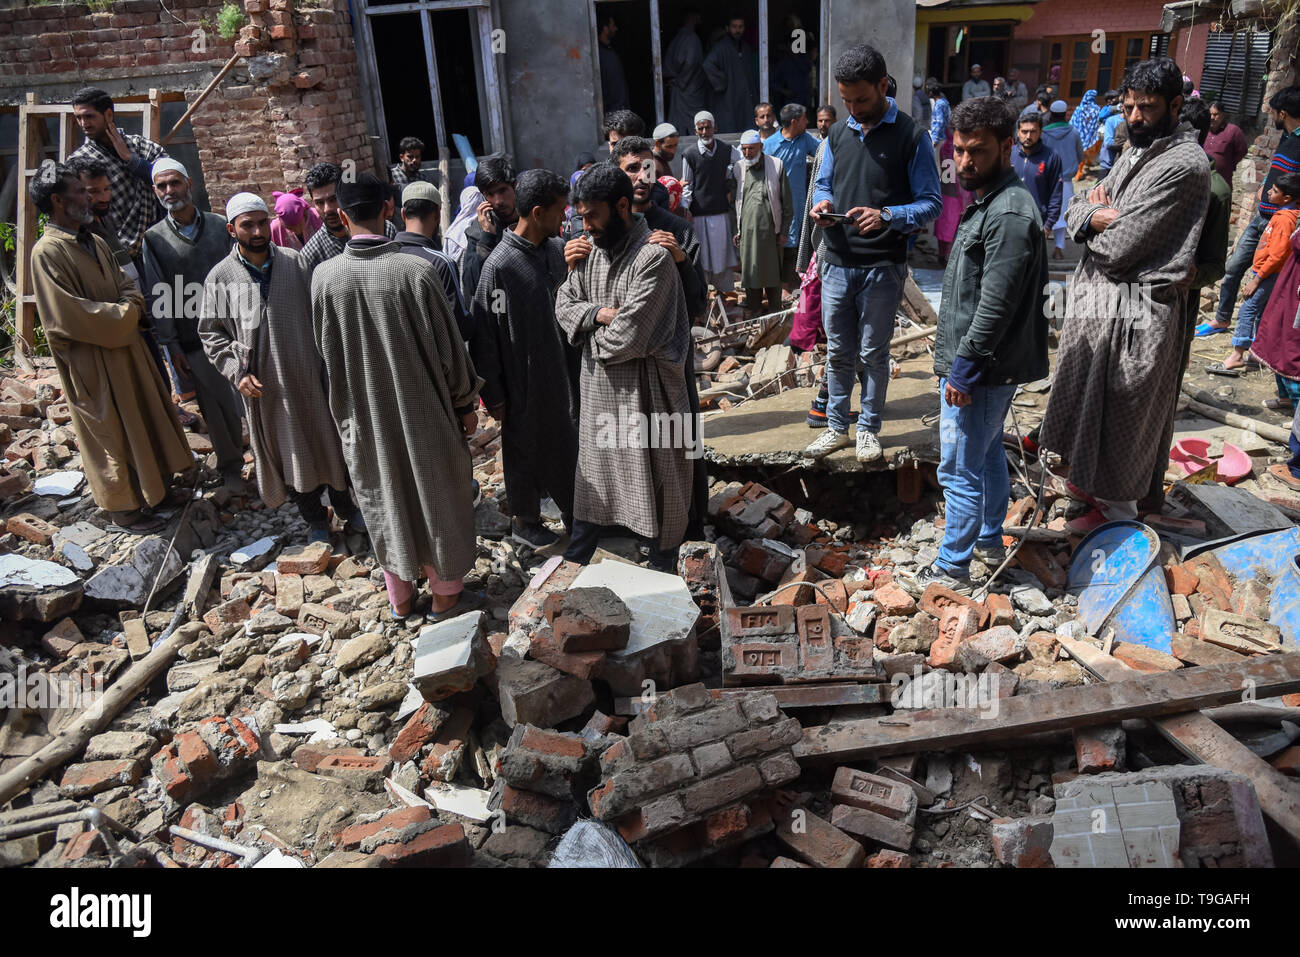 Kashmiri villagers are seen gathered around a partially damaged house after a gunfight in Pulwama, South of Srinagar. Four Kashmiri Rebels were killed on Saturday in two separate gunfights in Jammu and Kashmir's Pulwama and Baramulla districts. - Stock Image